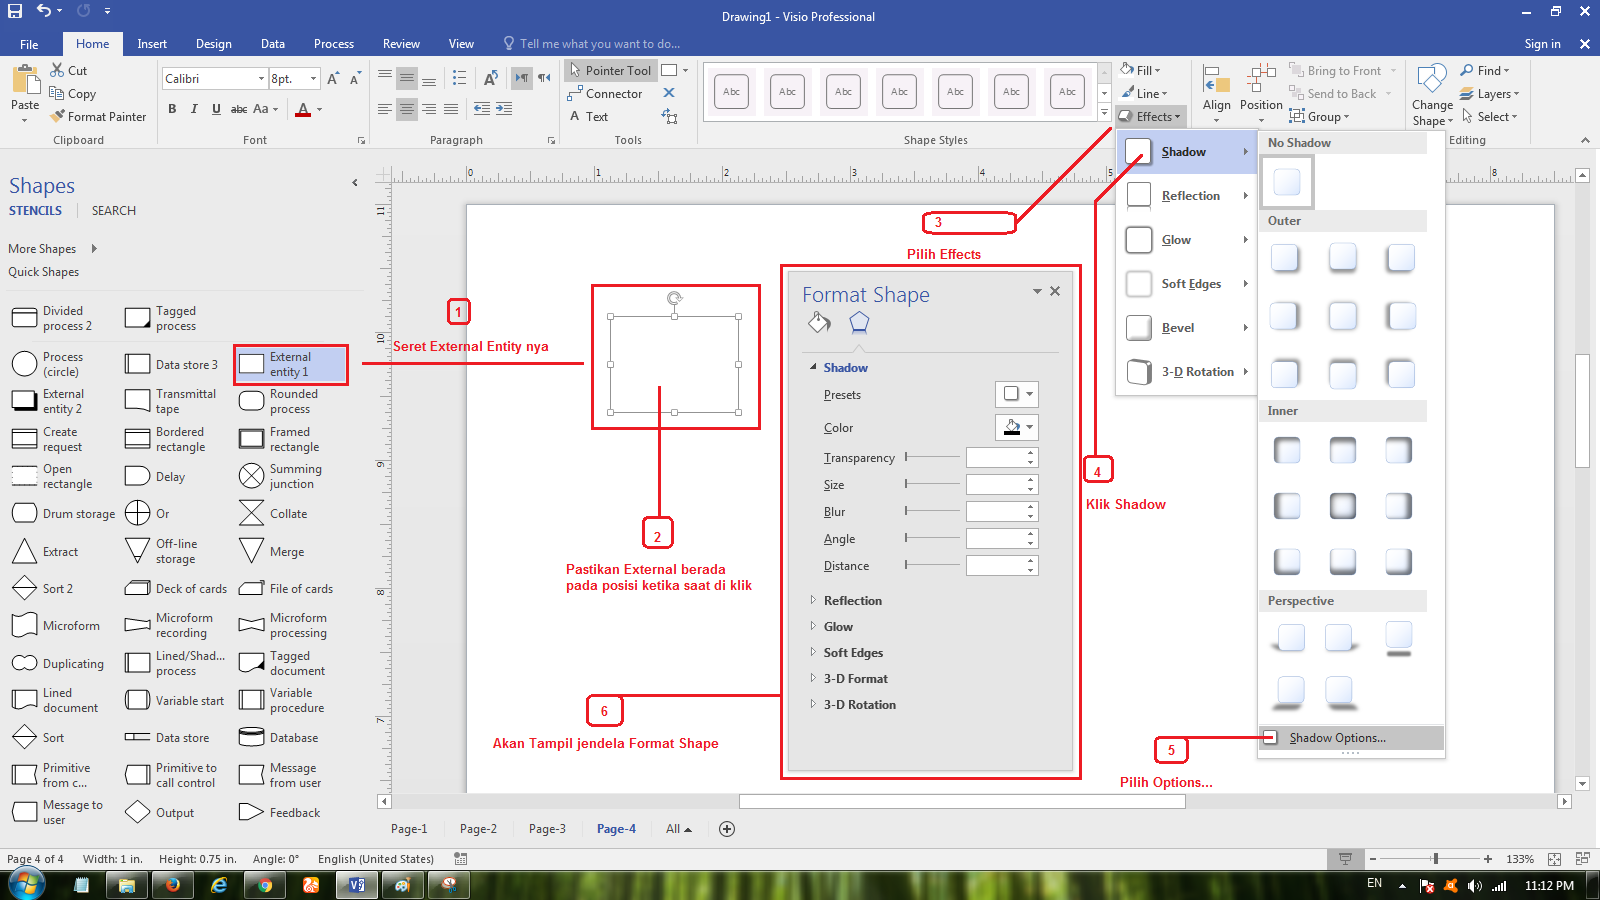 visio flow chart template